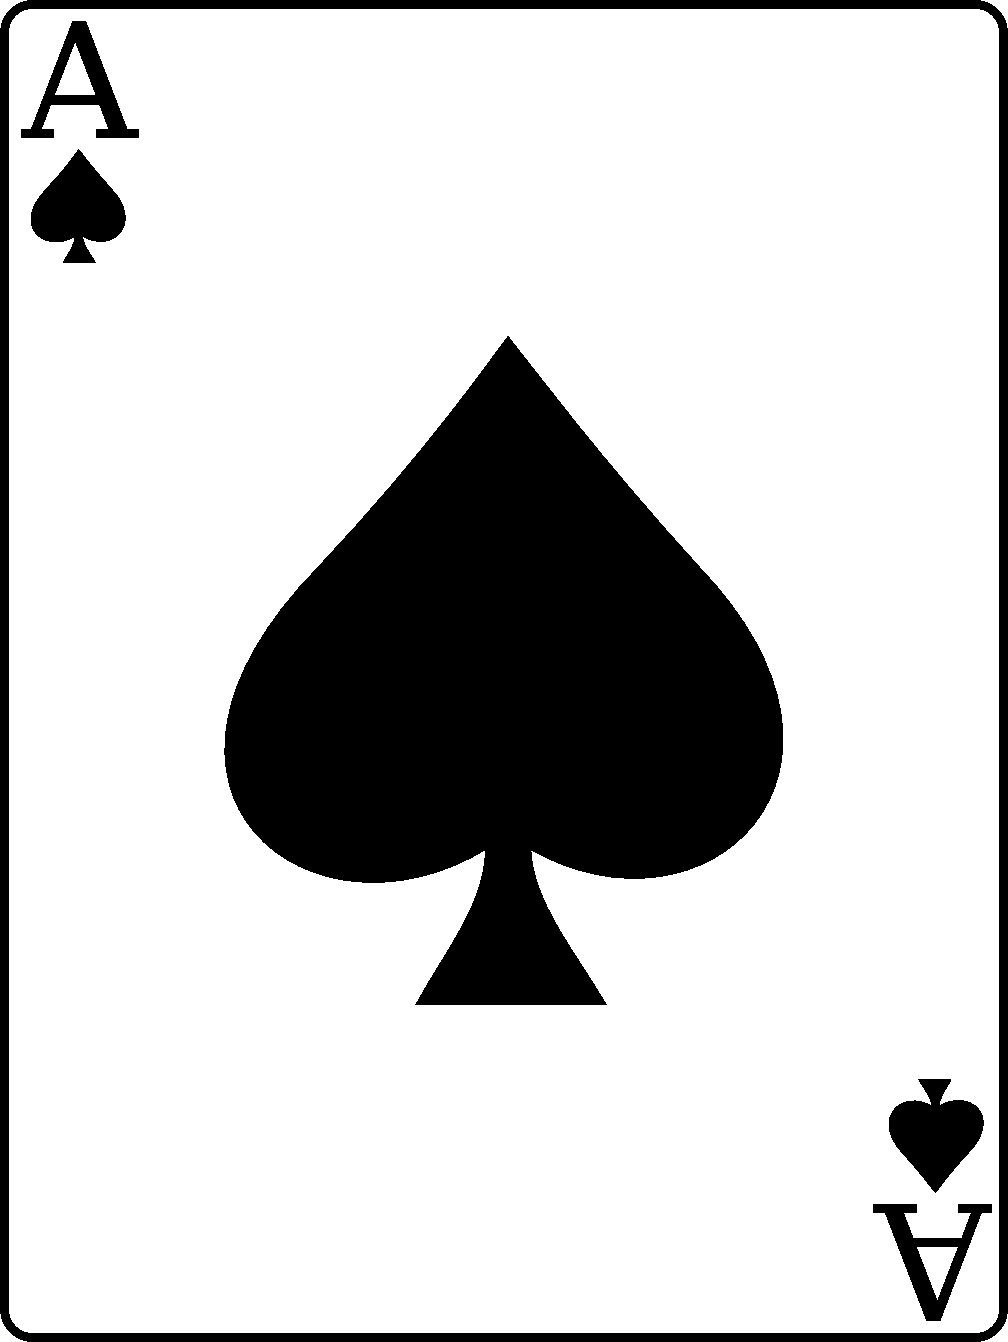 Ace Card Clipart